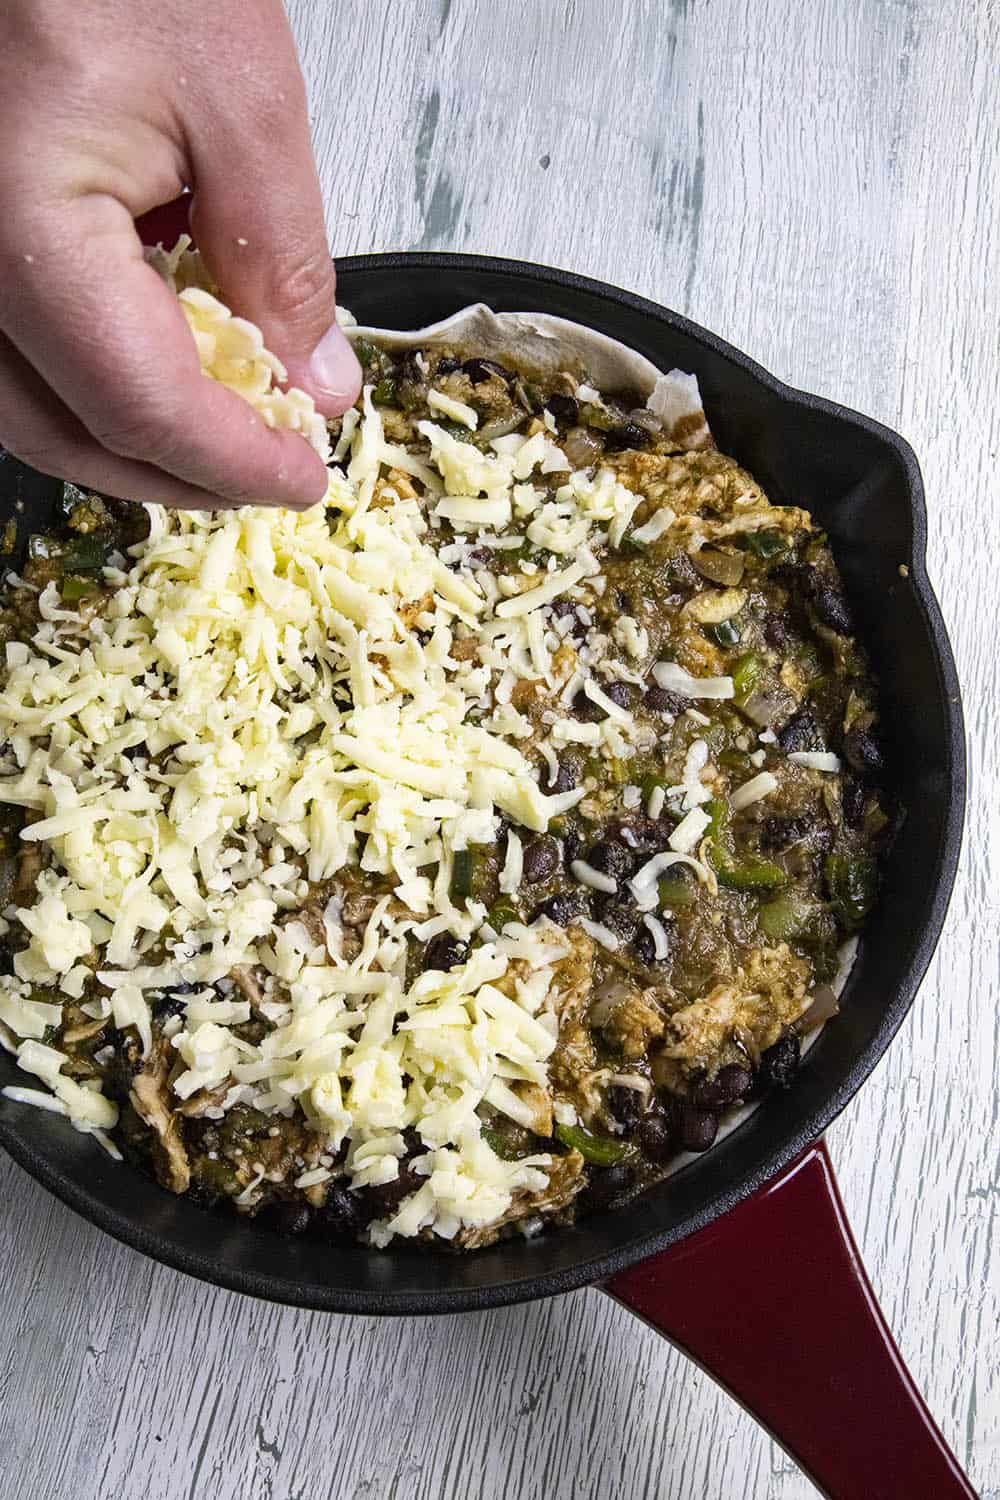 Top the casserole filling with shredded cheese